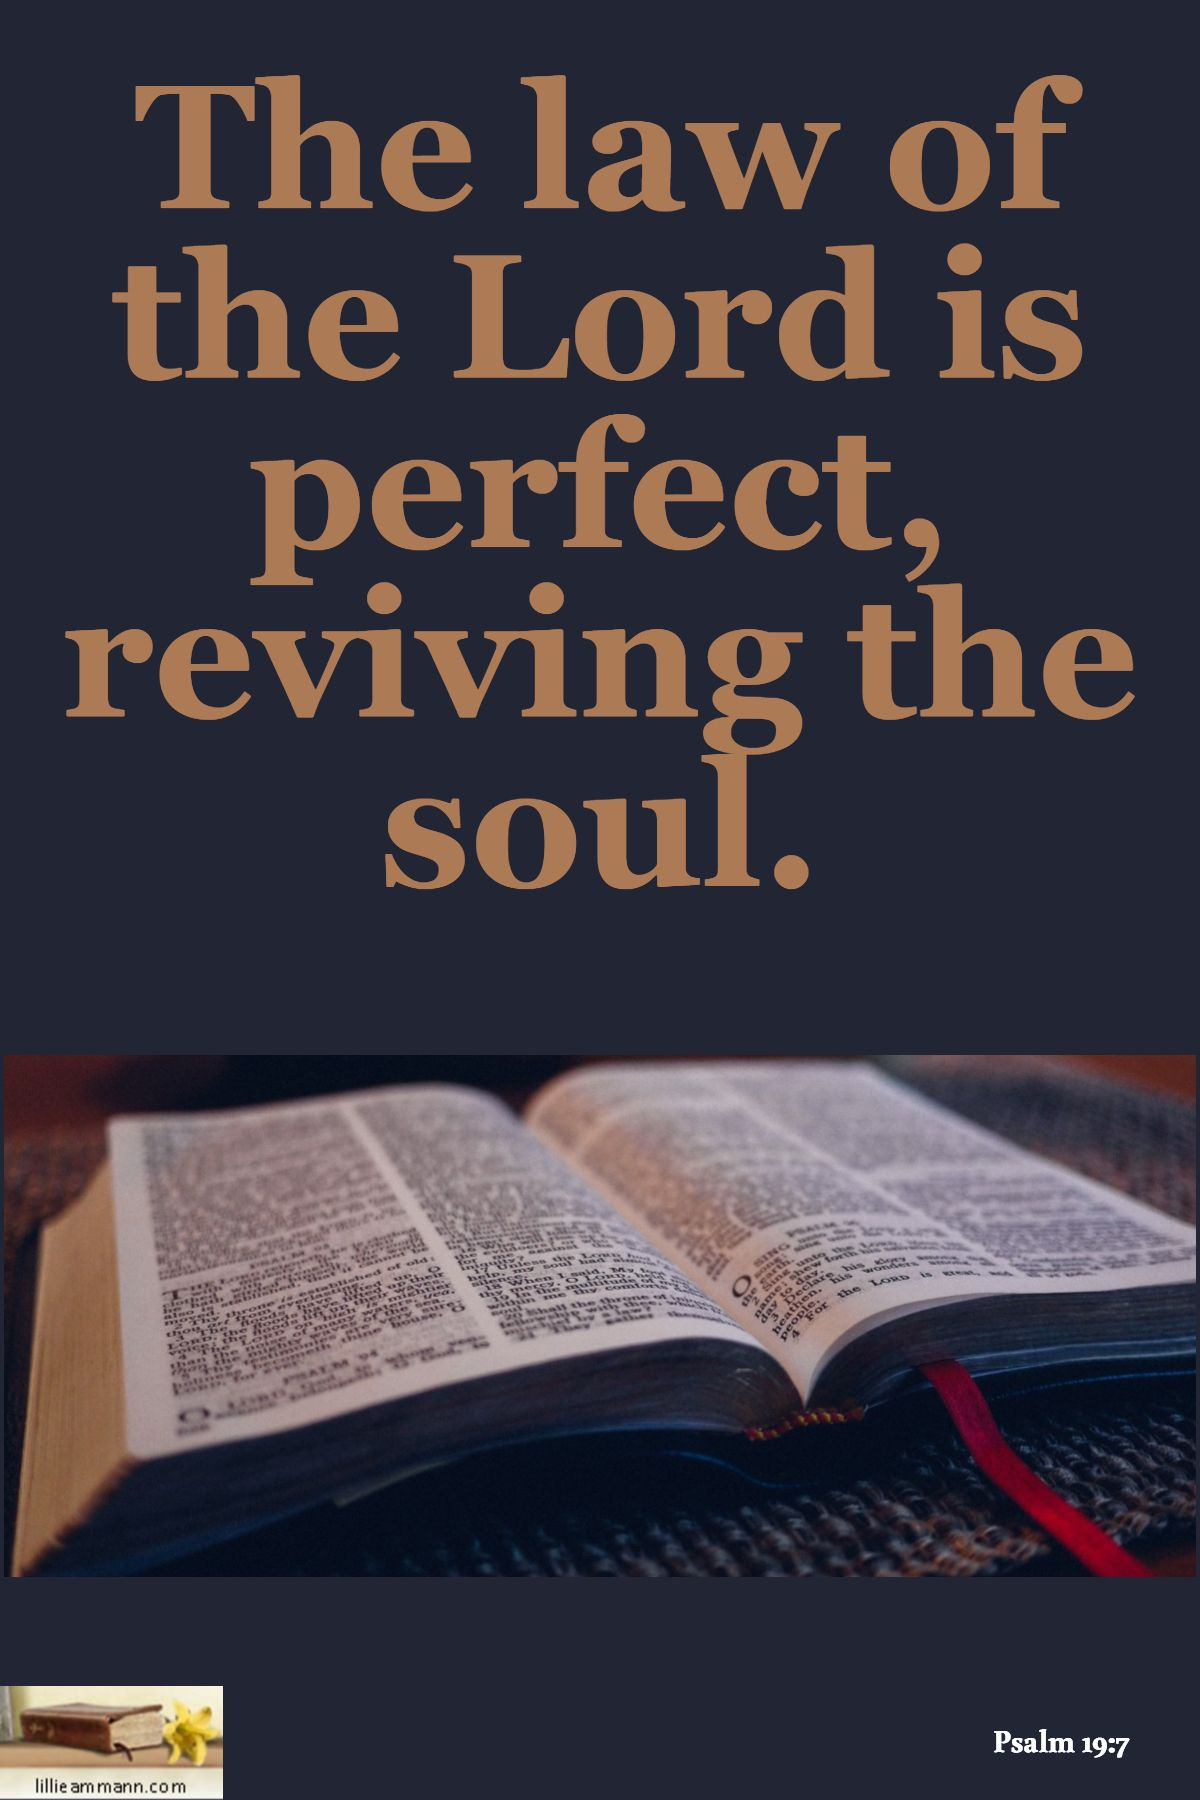 Psalm 19:7 / The law of the Lord is perfect, reviving the soul. | Psalms,  Quotations, Scripture